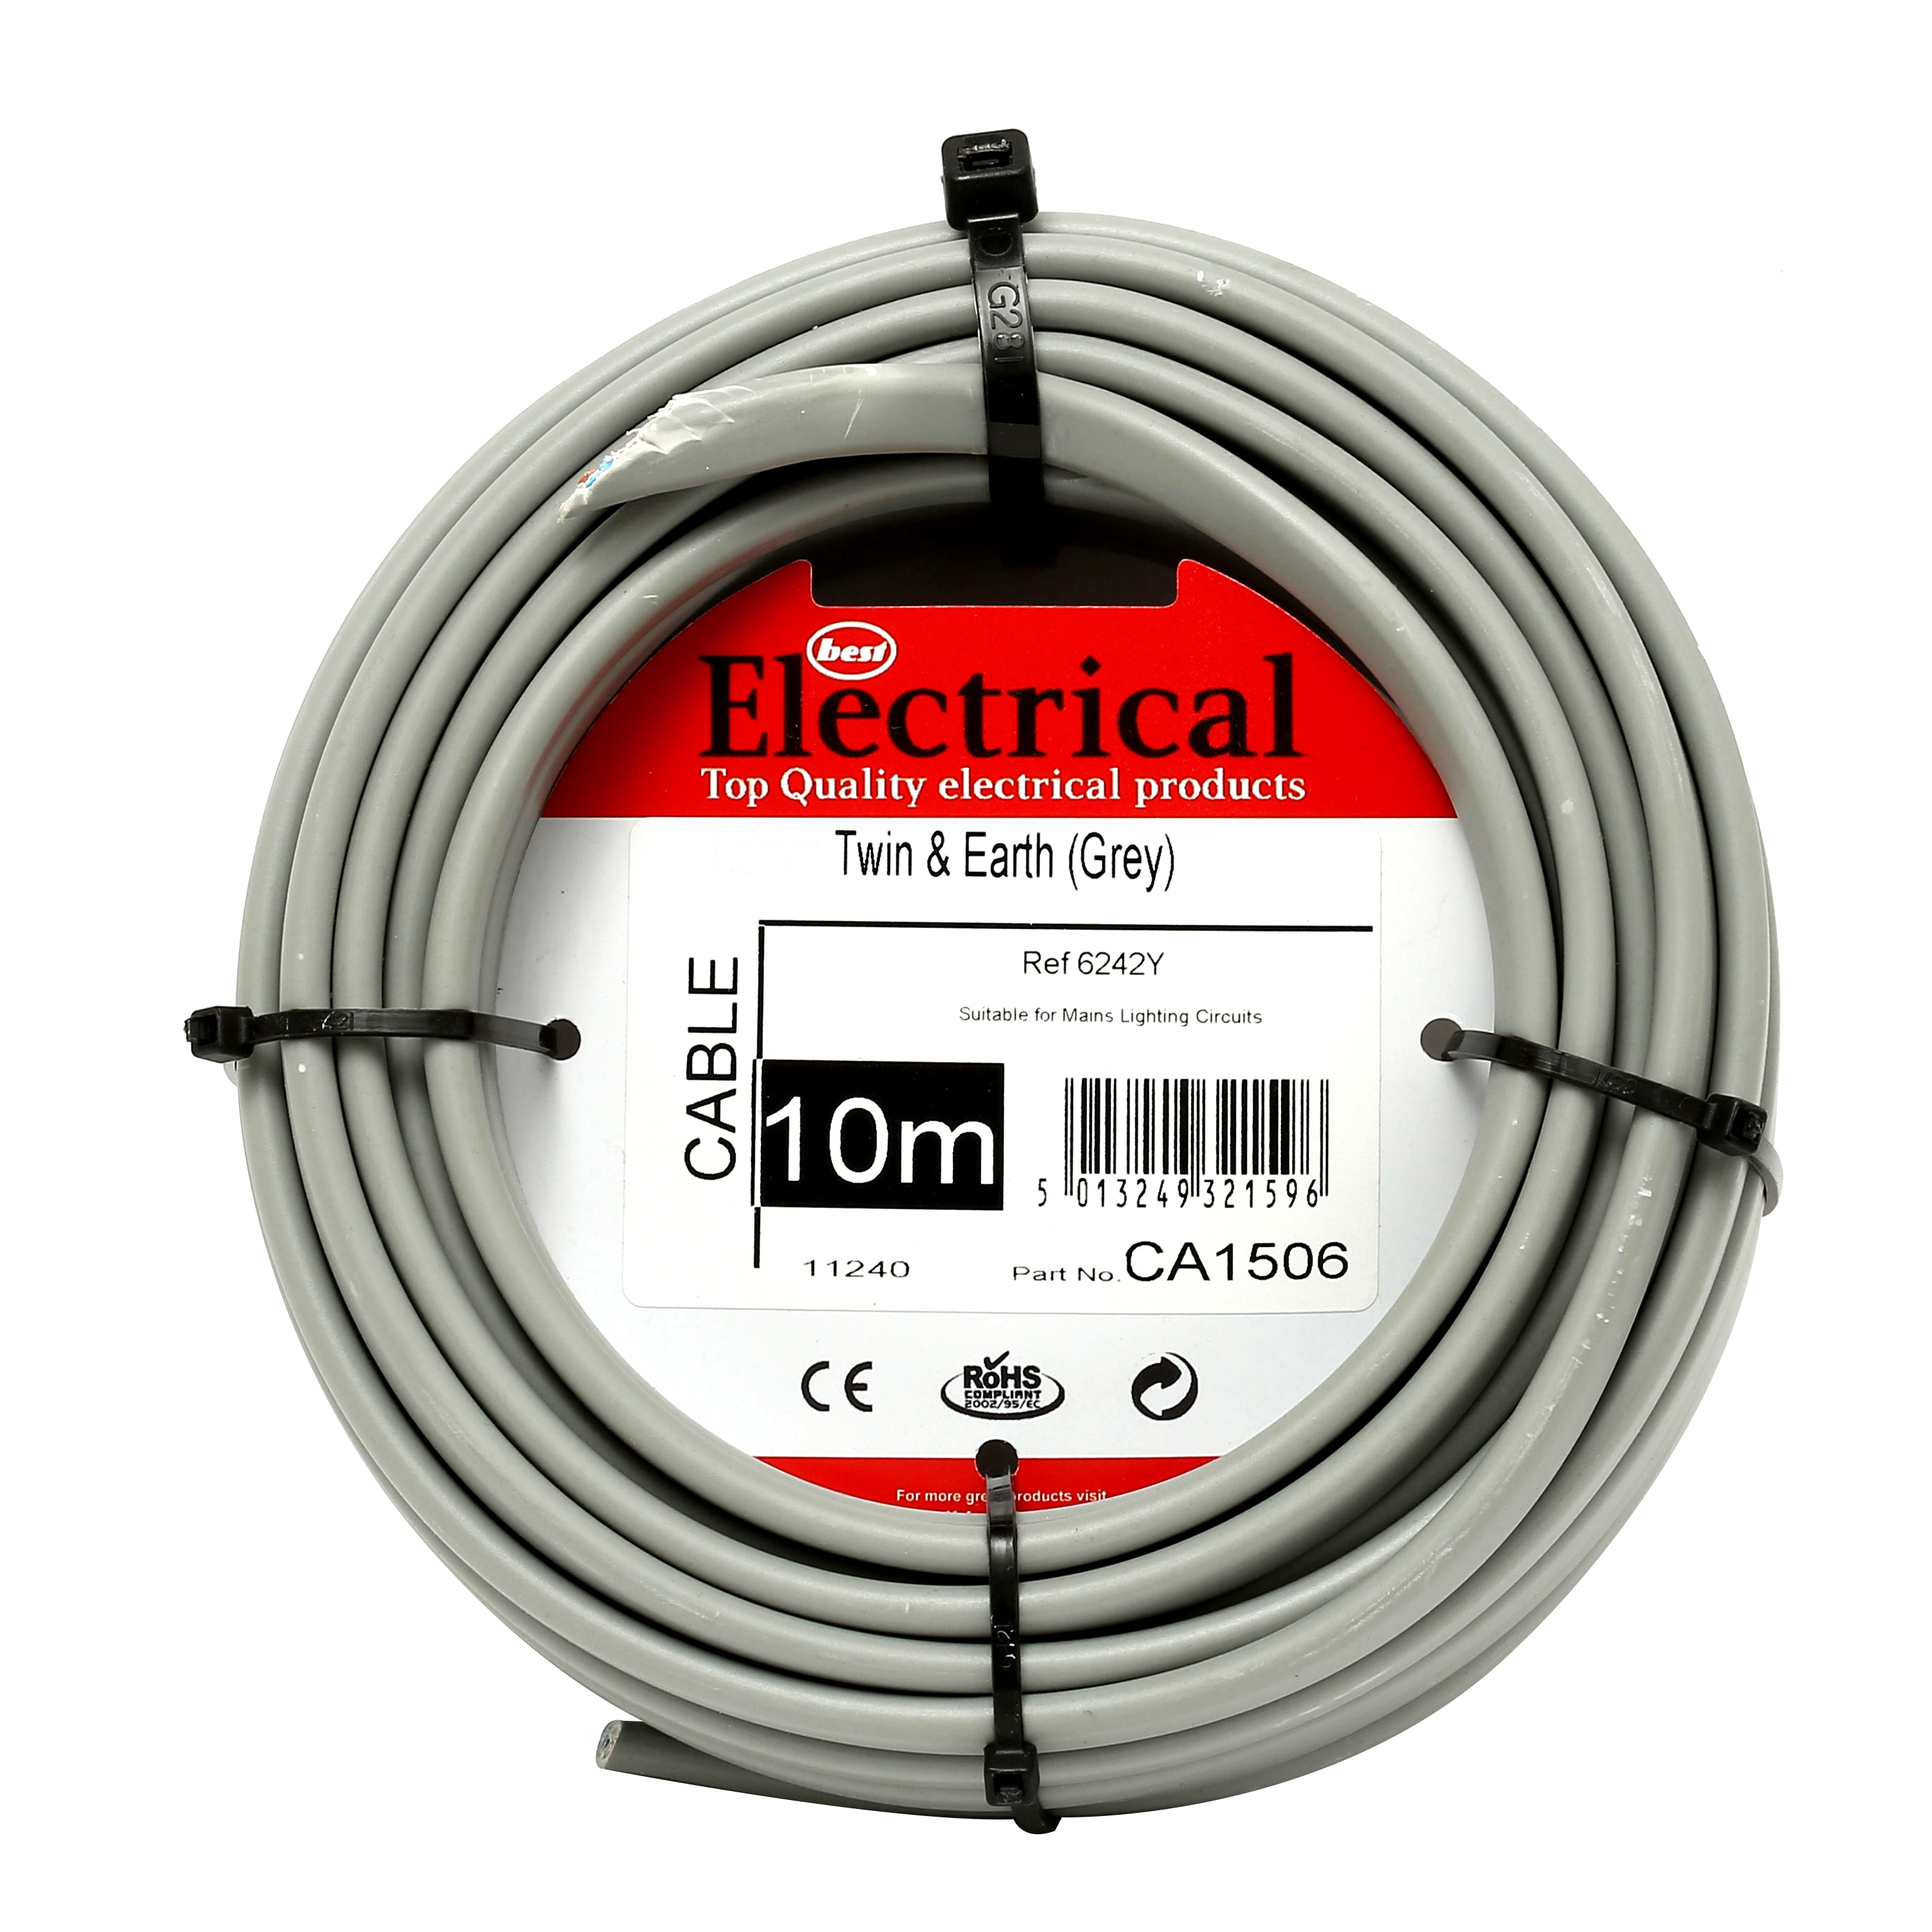 hight resolution of best electrical twin earth grey wiring cable 2 5mm